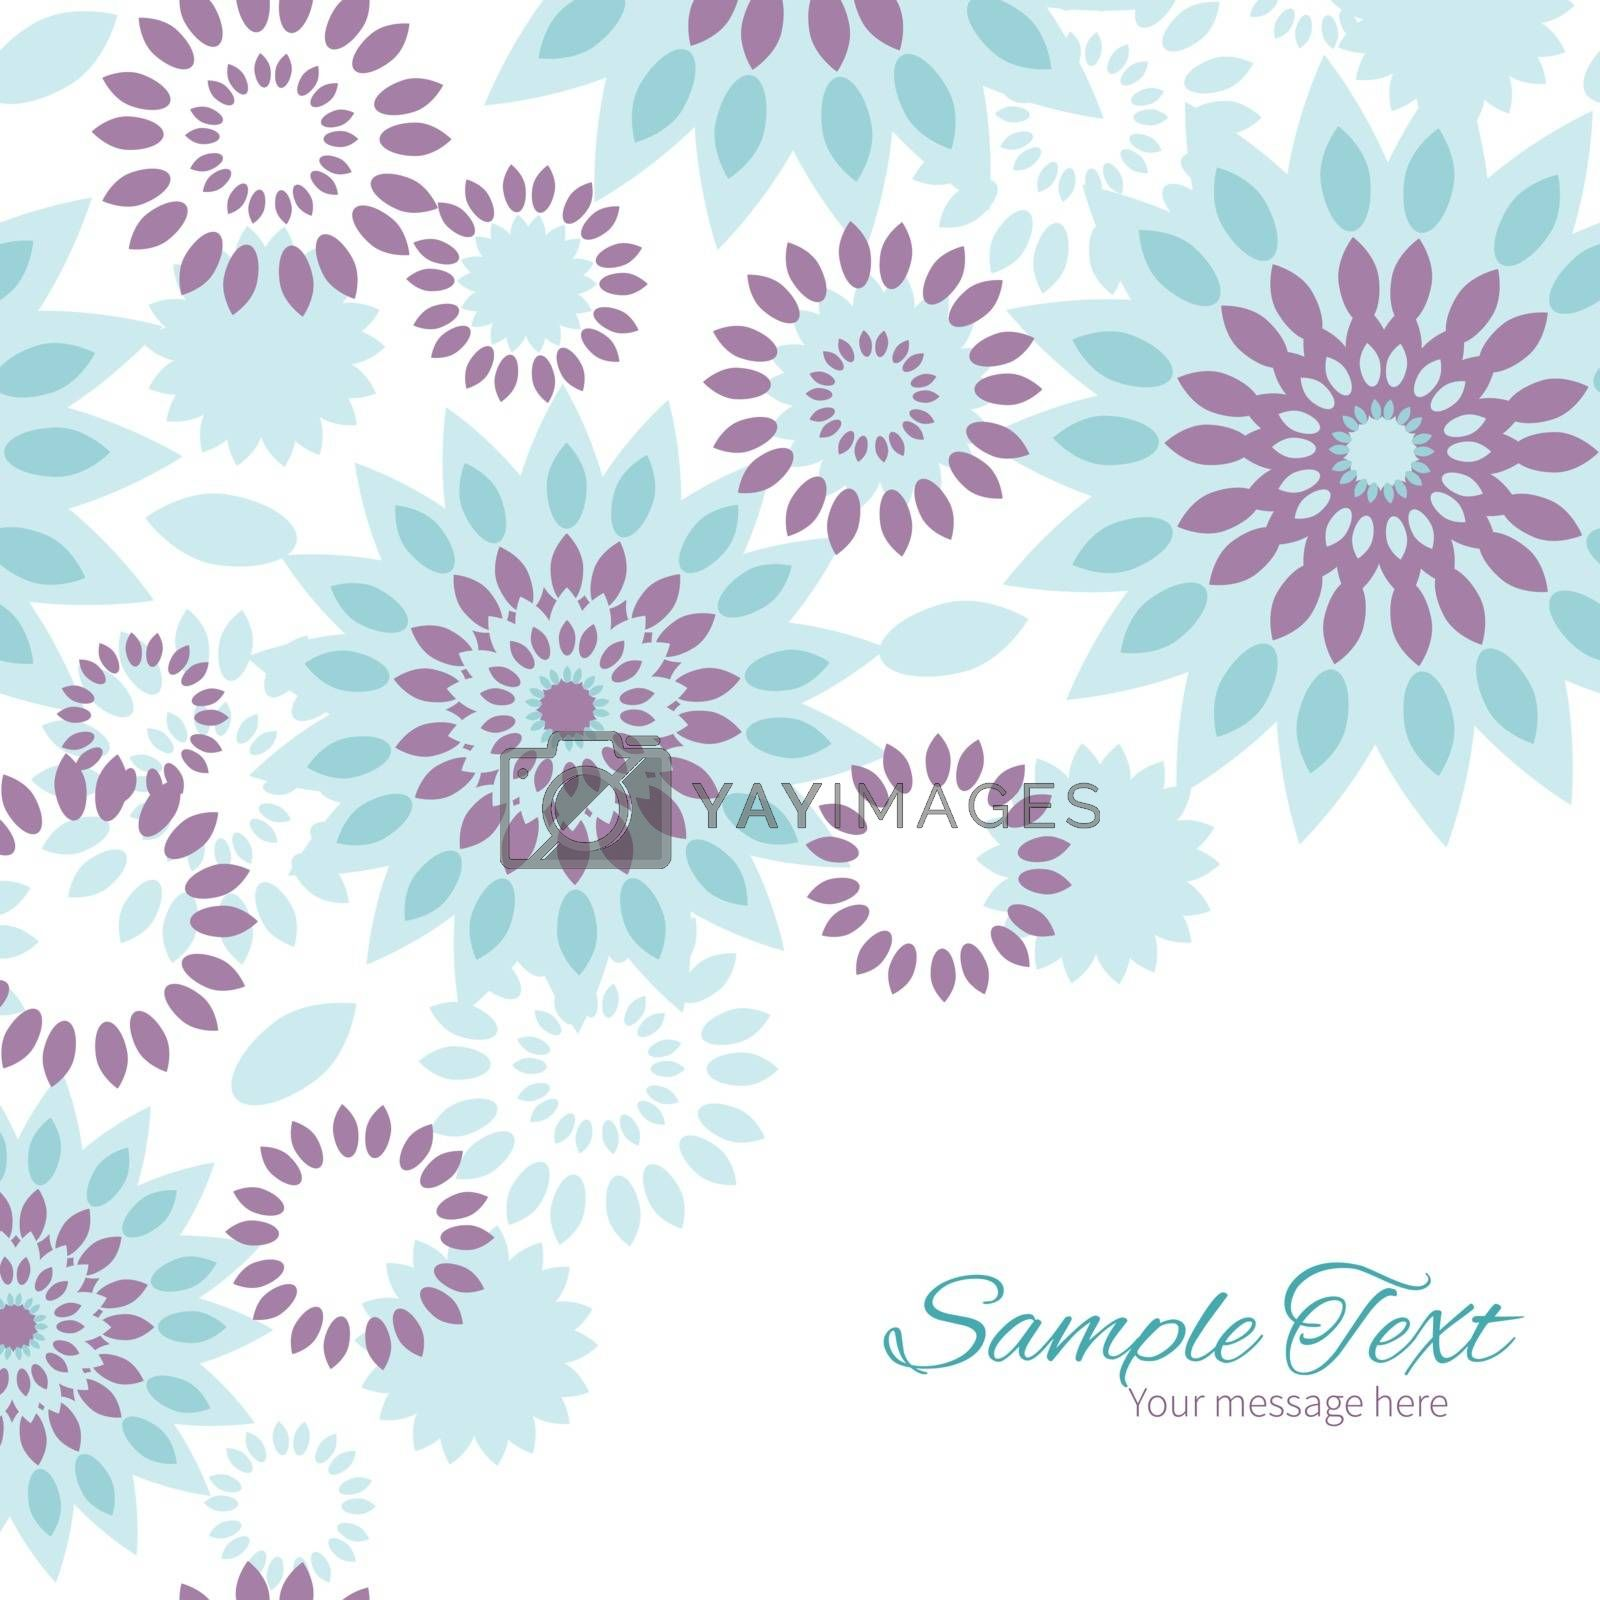 Vector purple and blue floral abstract frame corner pattern background graphic design